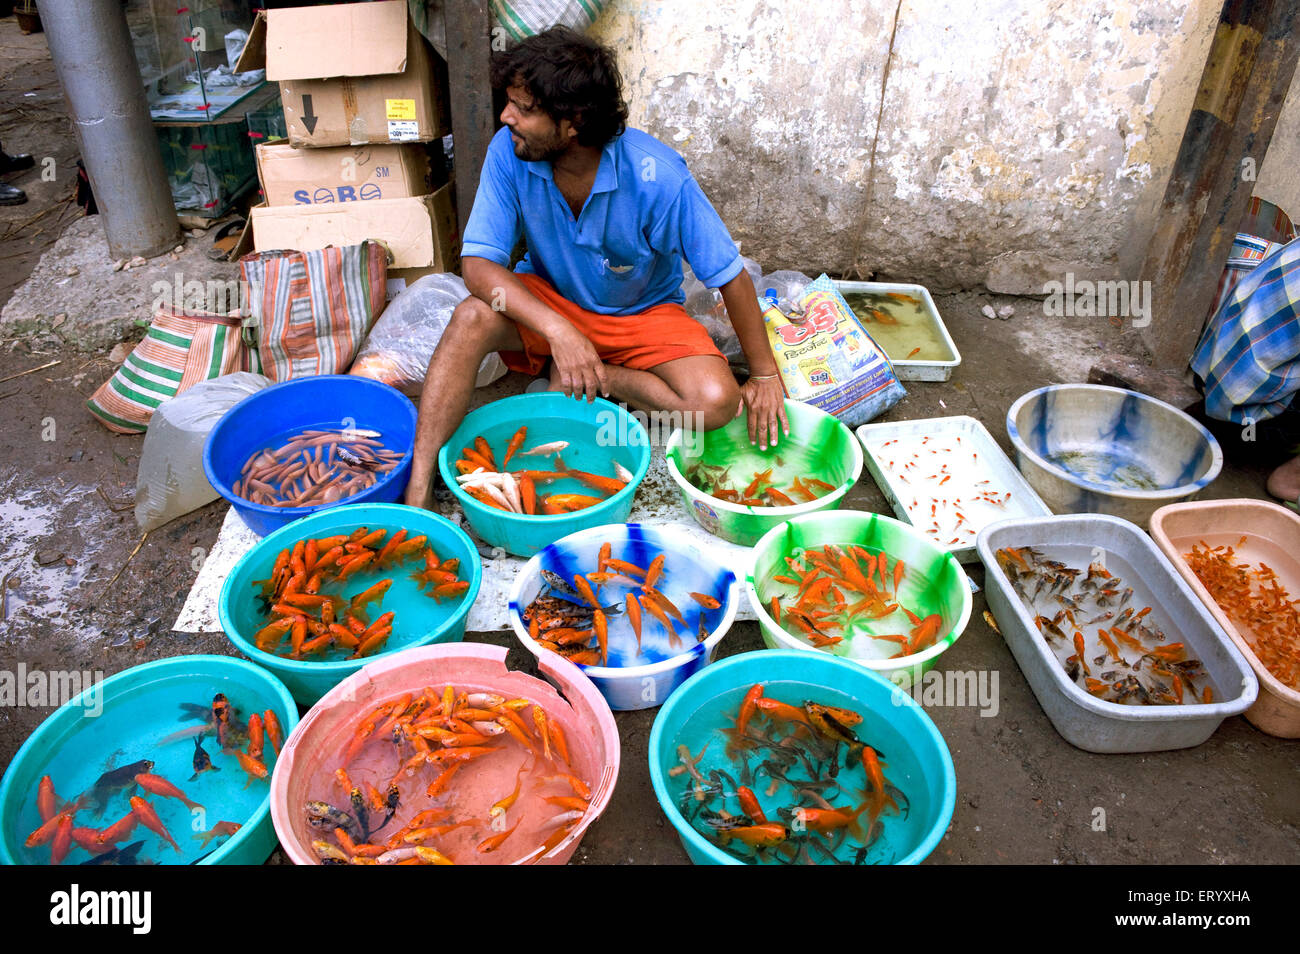 Fish Market Aqua Fish Seller Displaying Stock Of Aquarium Fishes